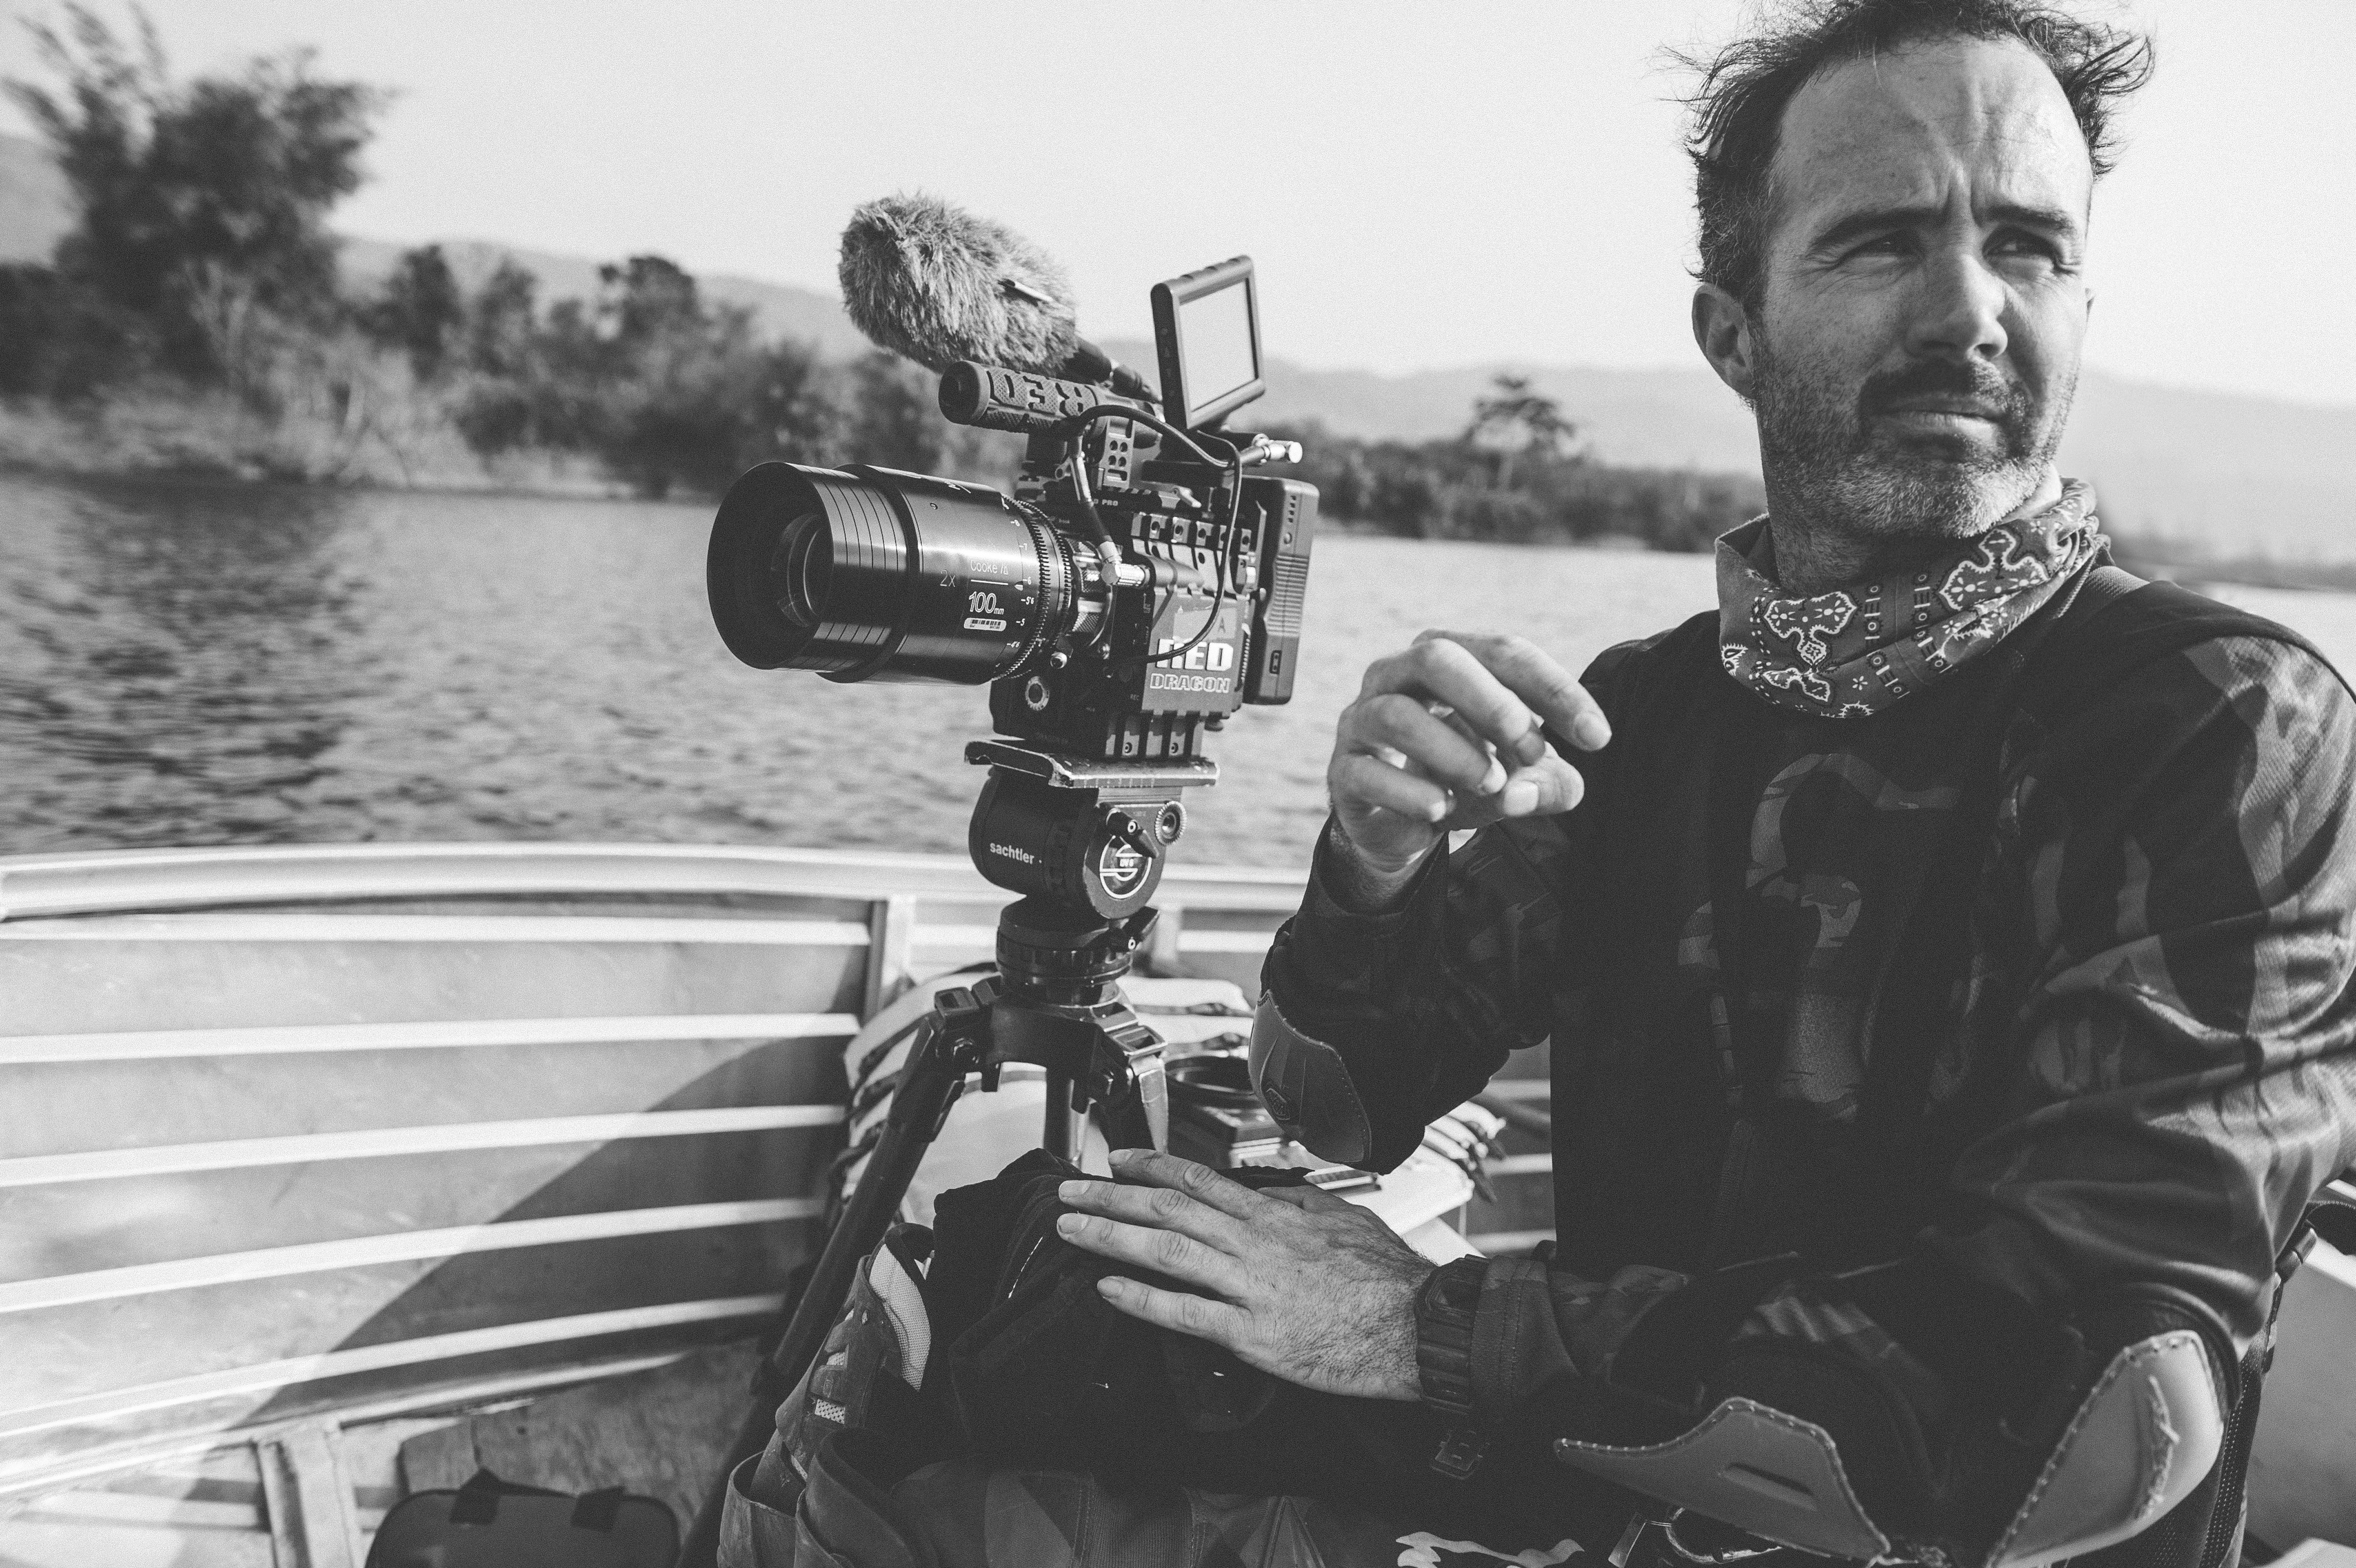 Harvest Signs Nicholas Schrunk to Directorial Roster